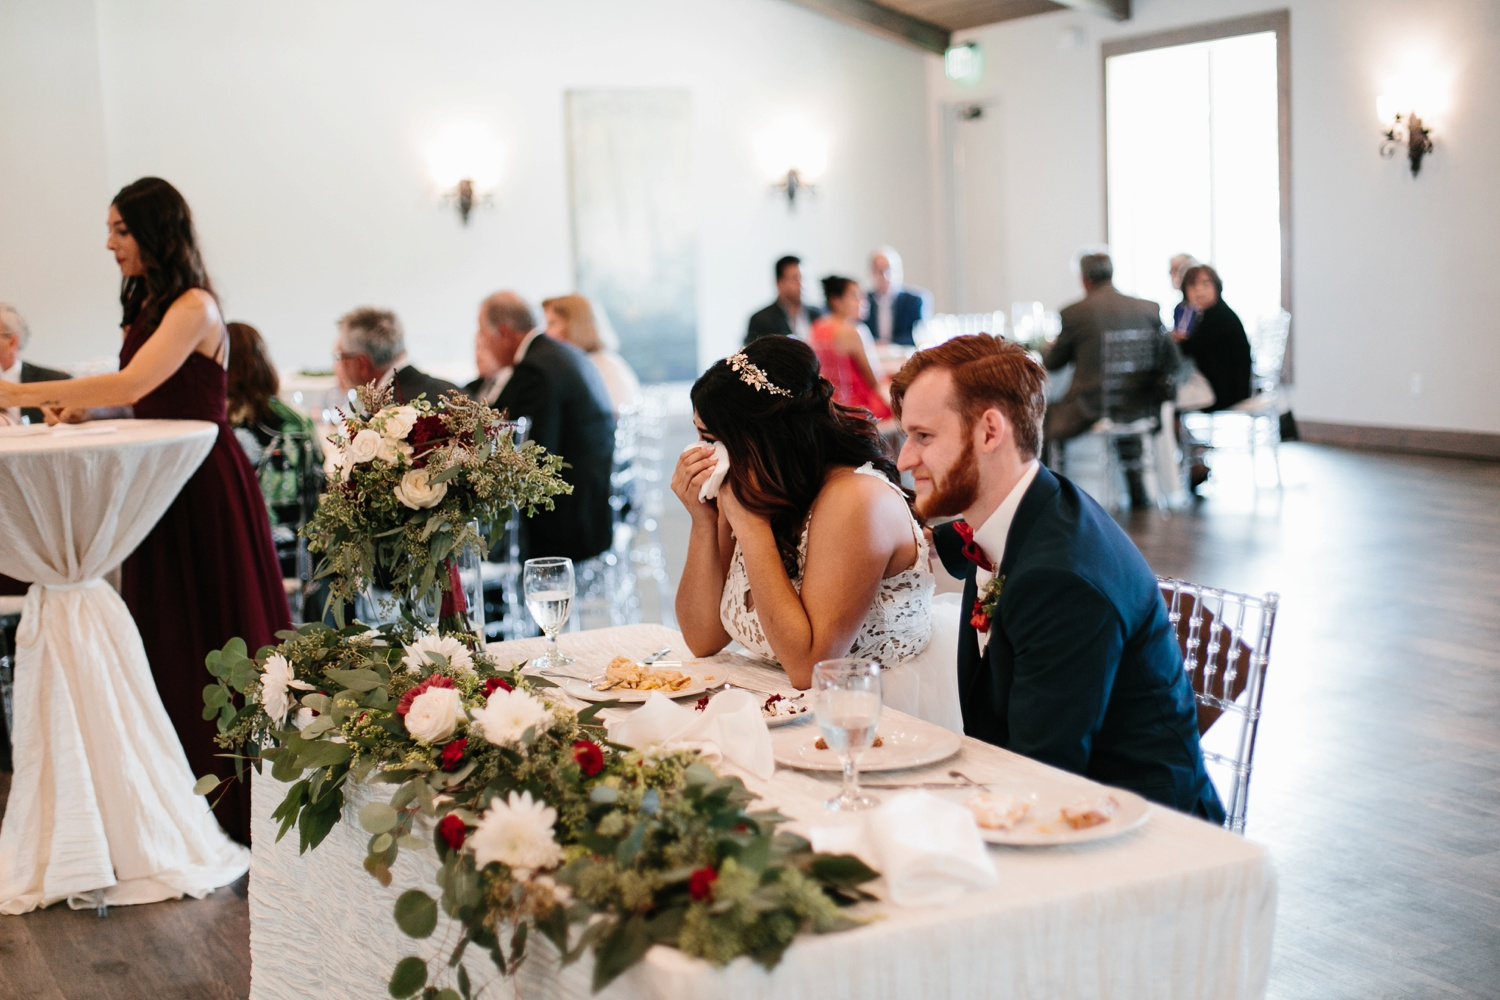 Grant + Lysette | a vibrant, deep burgundy and navy, and mixed metals wedding at Hidden Pines Chapel by North Texas Wedding Photographer Rachel Meagan Photography 152